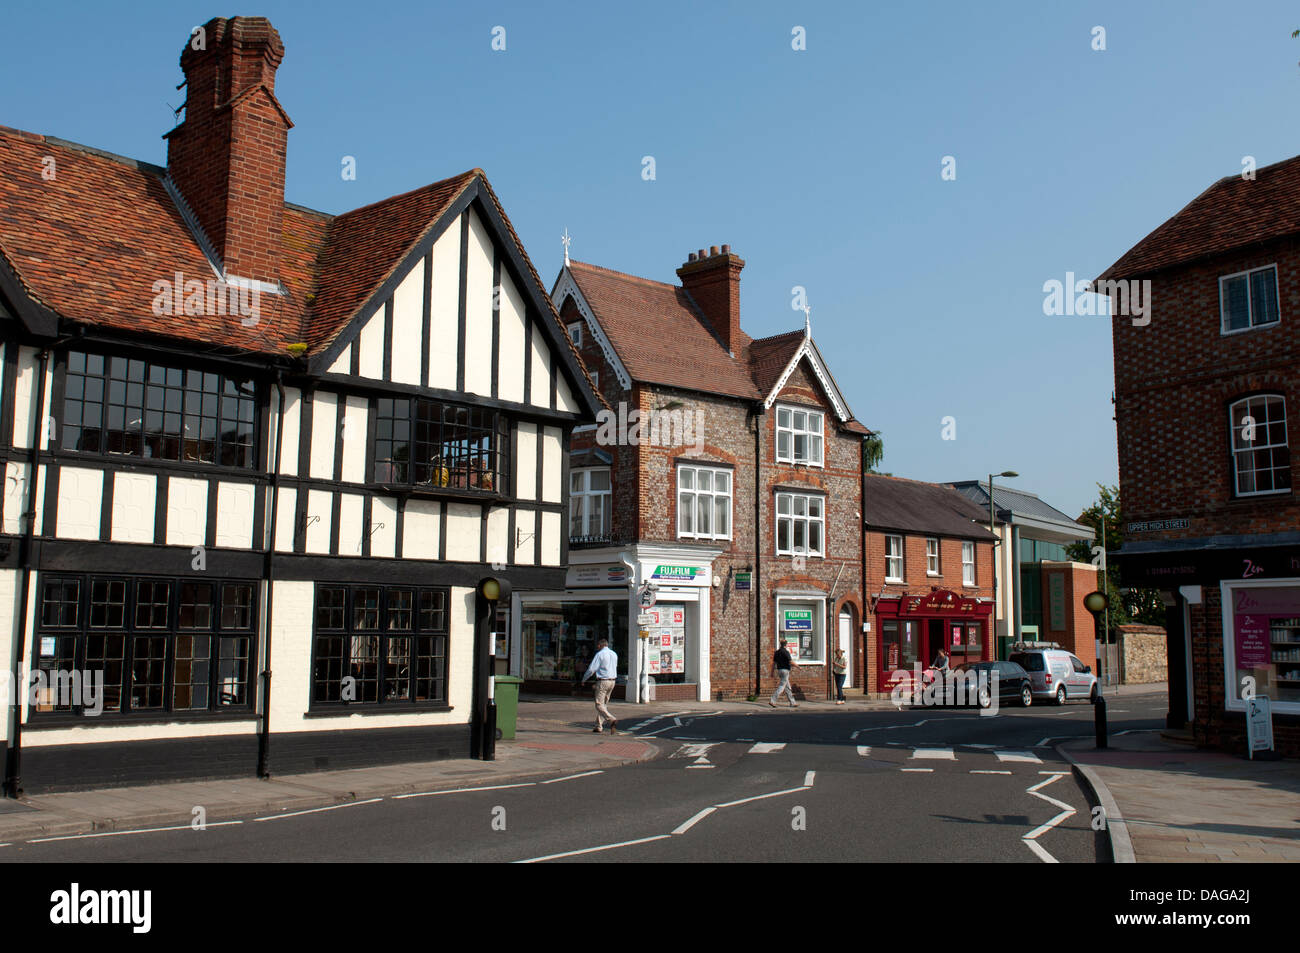 Upper High Street, Thame, Oxfordshire, UK - Stock Image